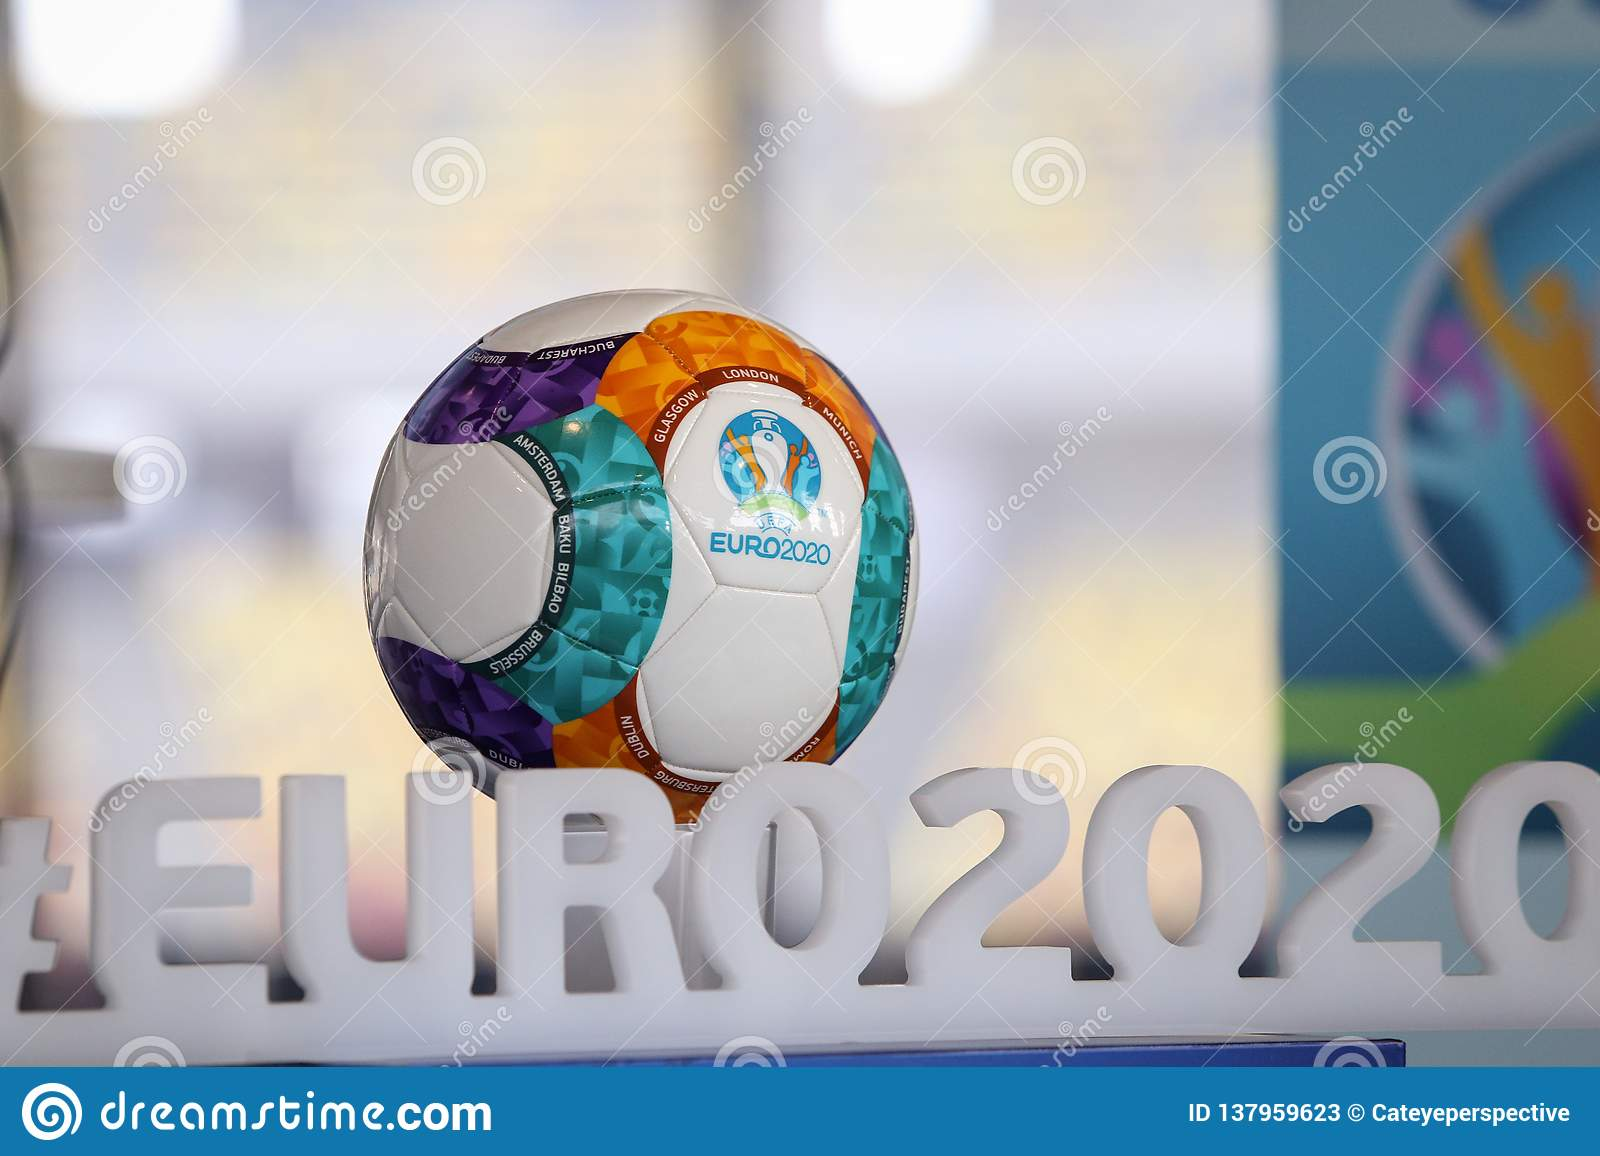 the 2020 uefa european football championship 2020 logo and official ball editorial stock photo image of details kick 137959623 https www dreamstime com uefa european football championship logo official ball bucharest romania january commonly referred to as euro image137959623